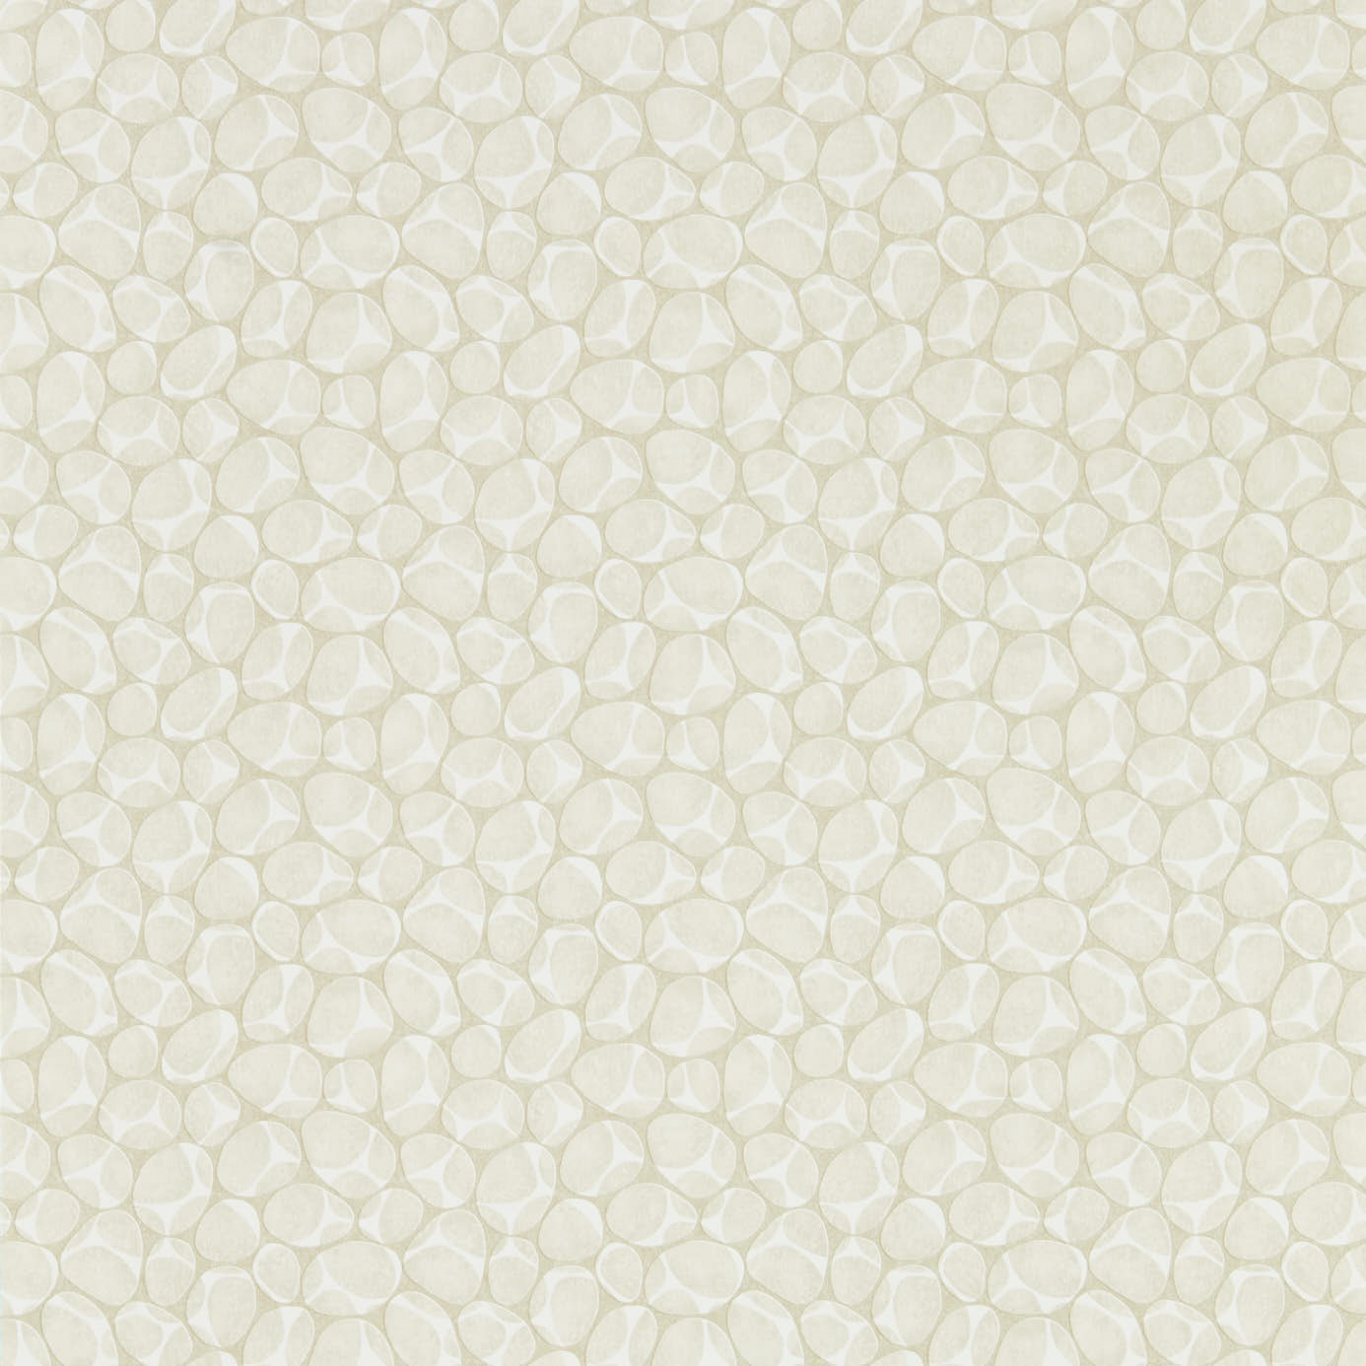 Image of Sanderson Home Cobble Driftwood Wallpaper 216581